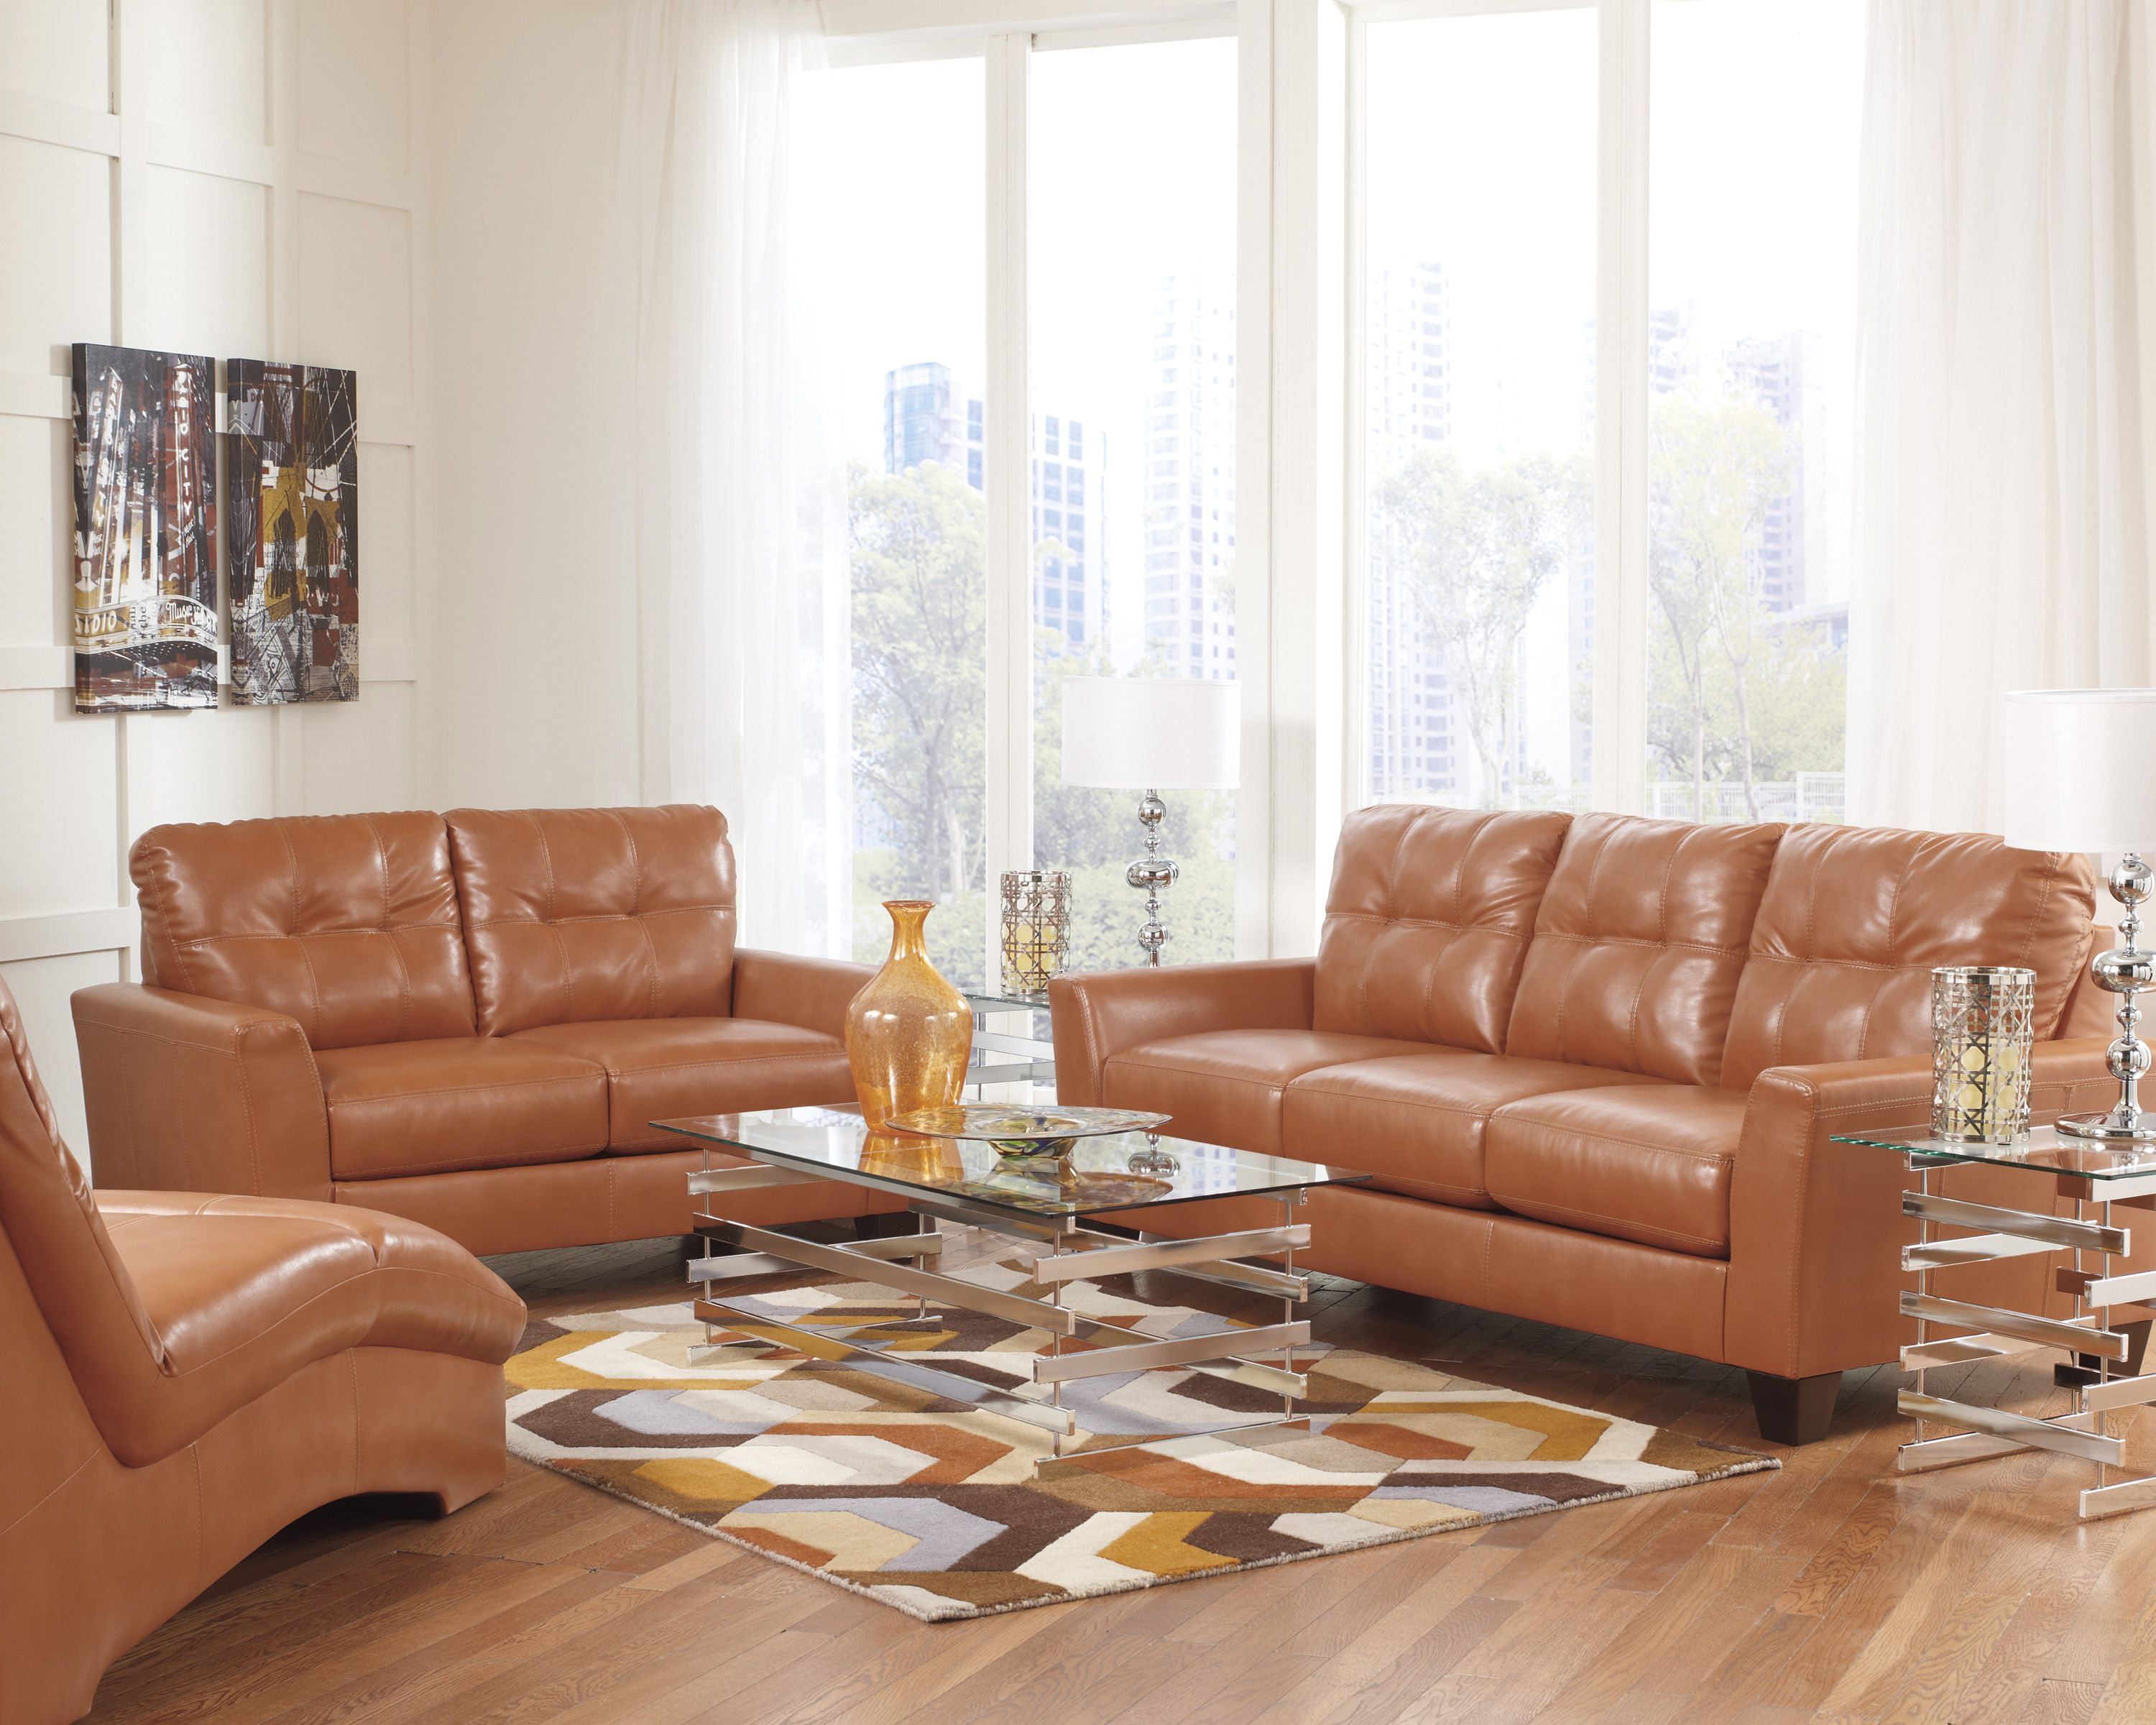 Paulie Durablend Leather Orange Sofa Collection